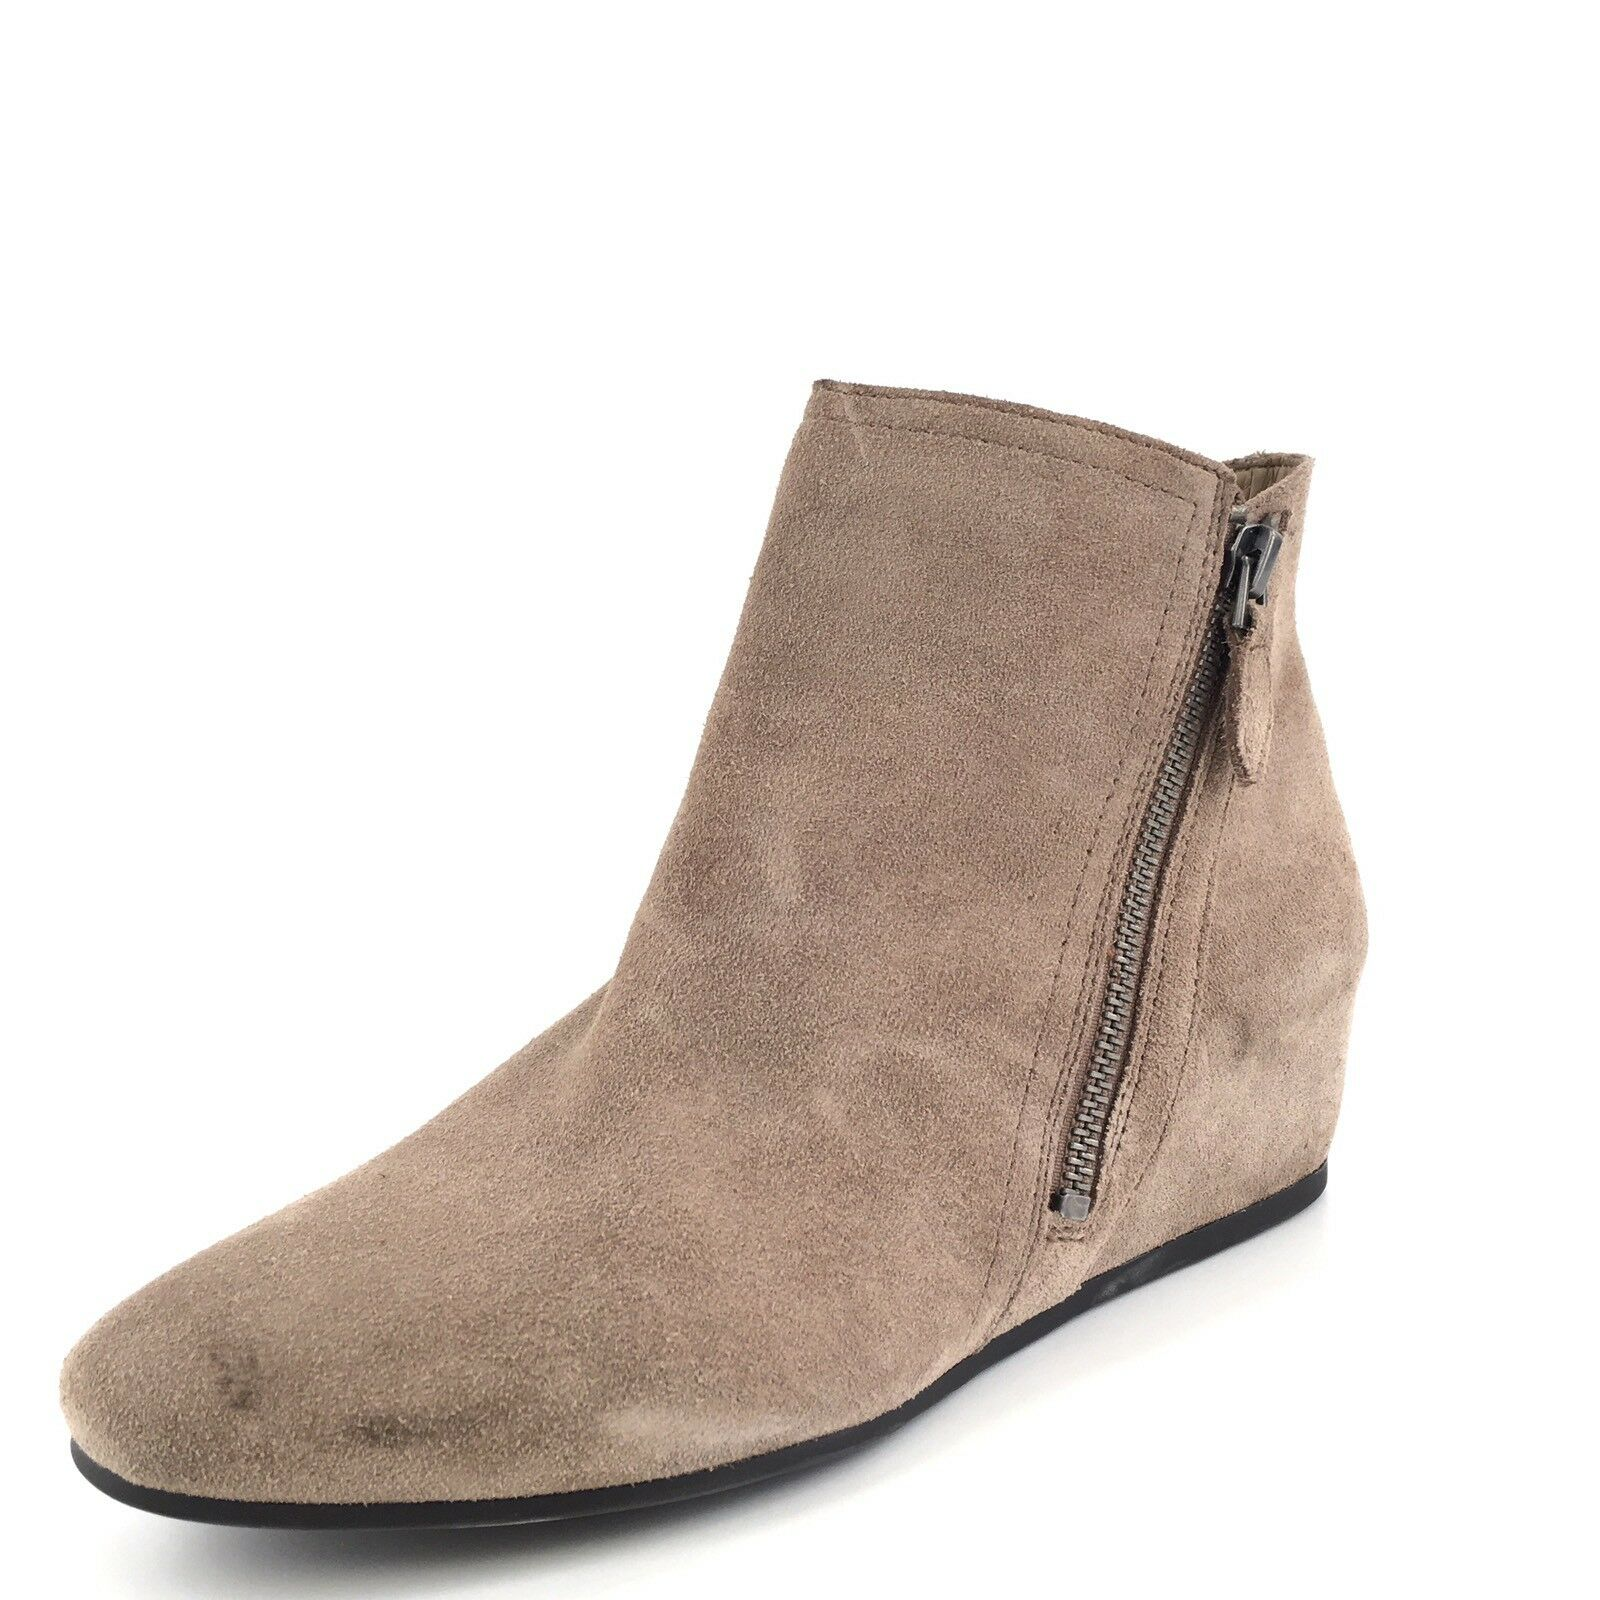 Franco Sarto Violetta Taupe Suede Ankle Boots Women's Size 6.5 M *